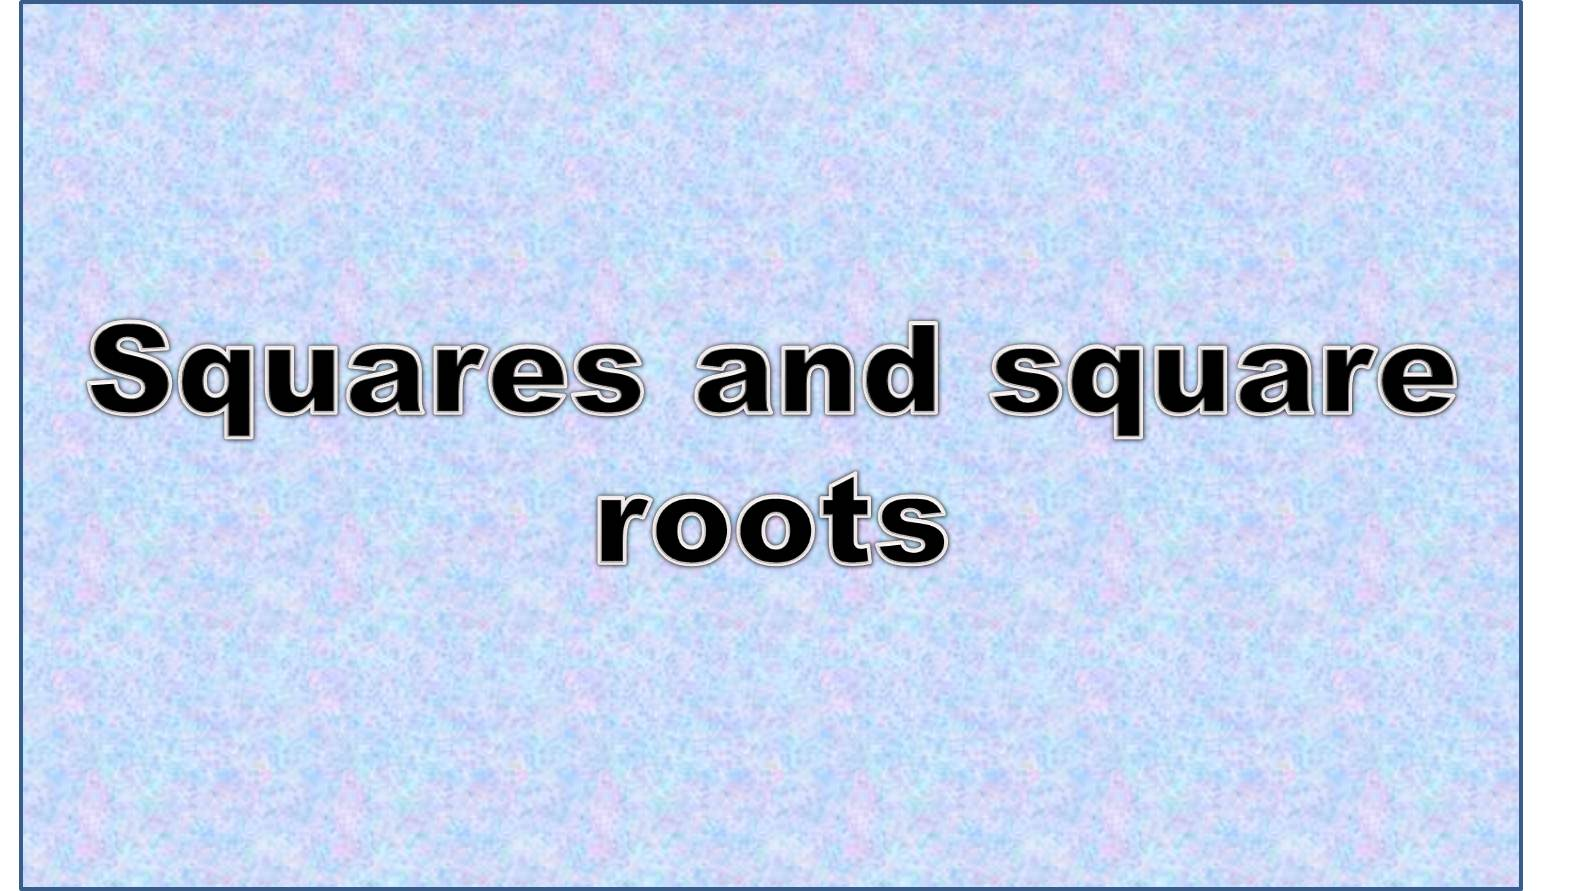 http://study.aisectonline.com/images/Understanding square roots.jpg